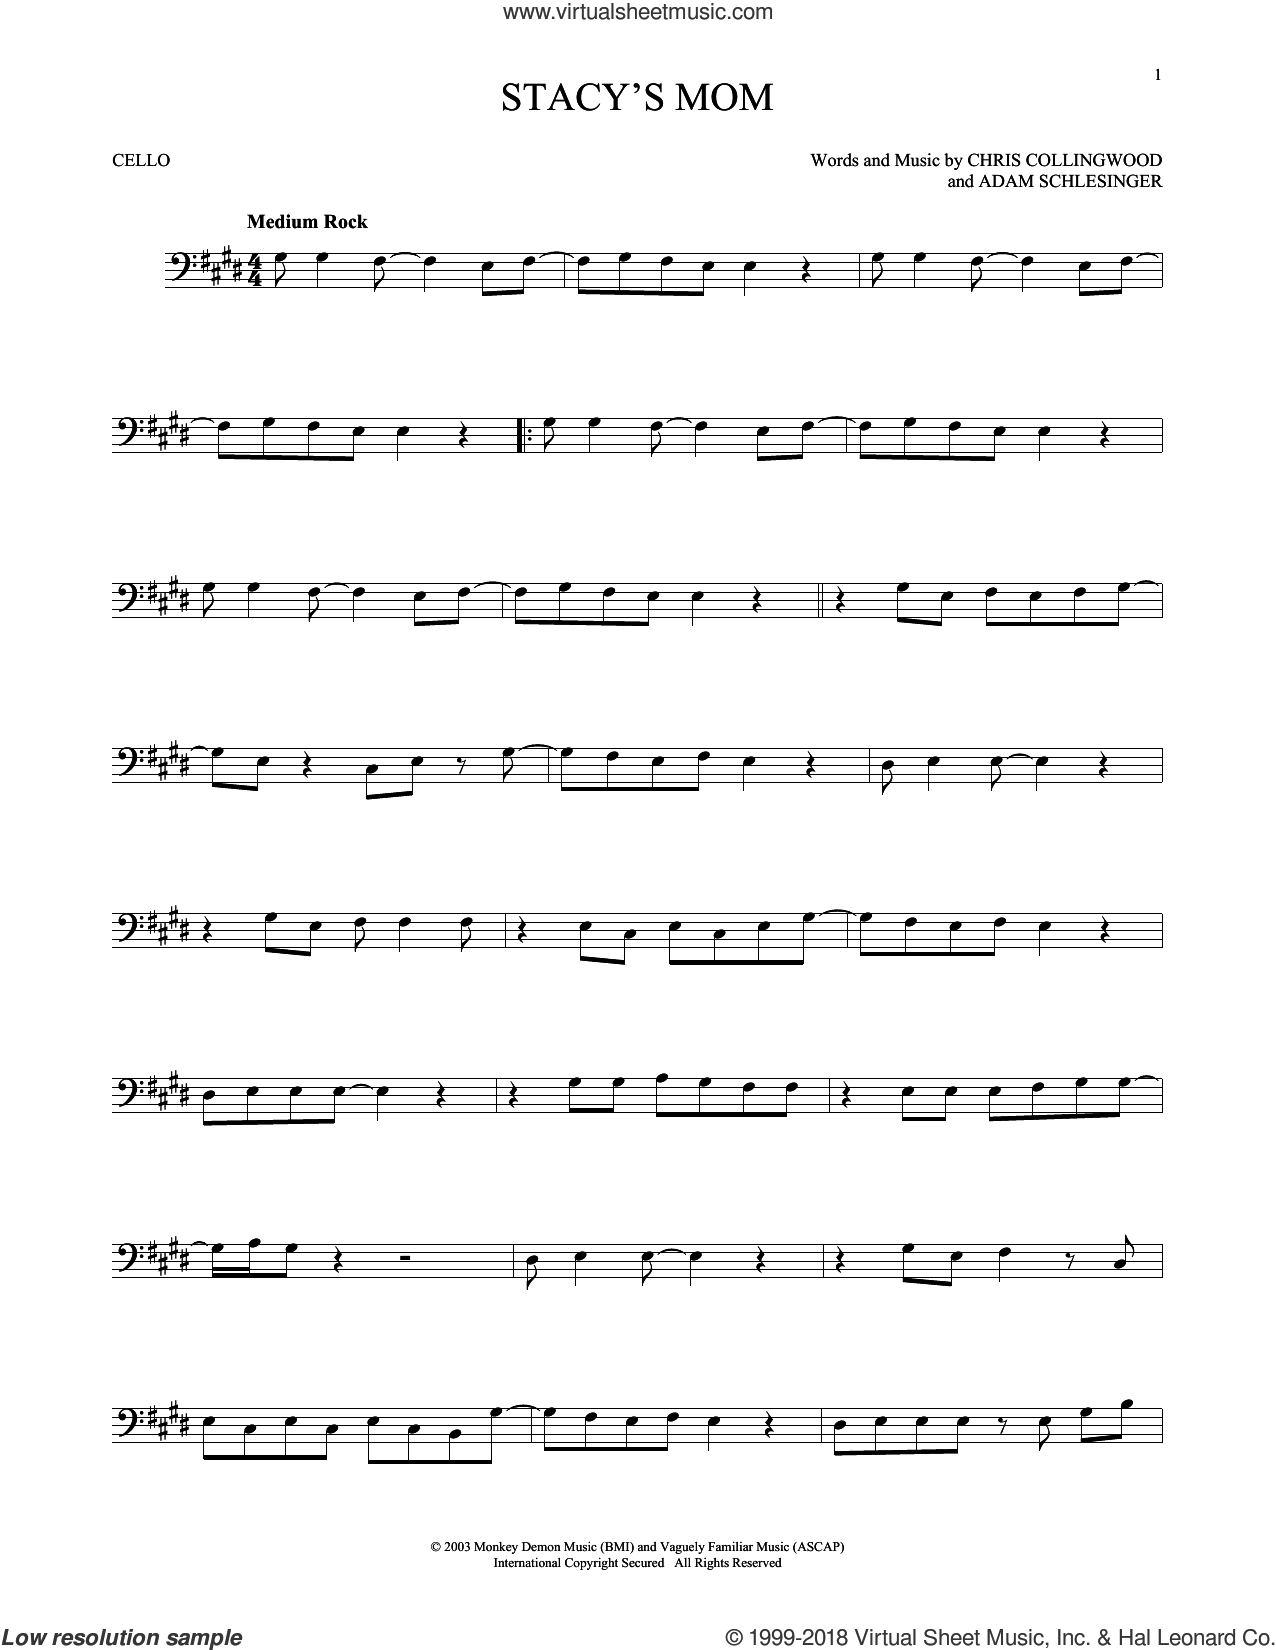 Stacy's Mom sheet music for cello solo by Fountains Of Wayne, Adam Schlesinger and Chris Collingwood, intermediate skill level